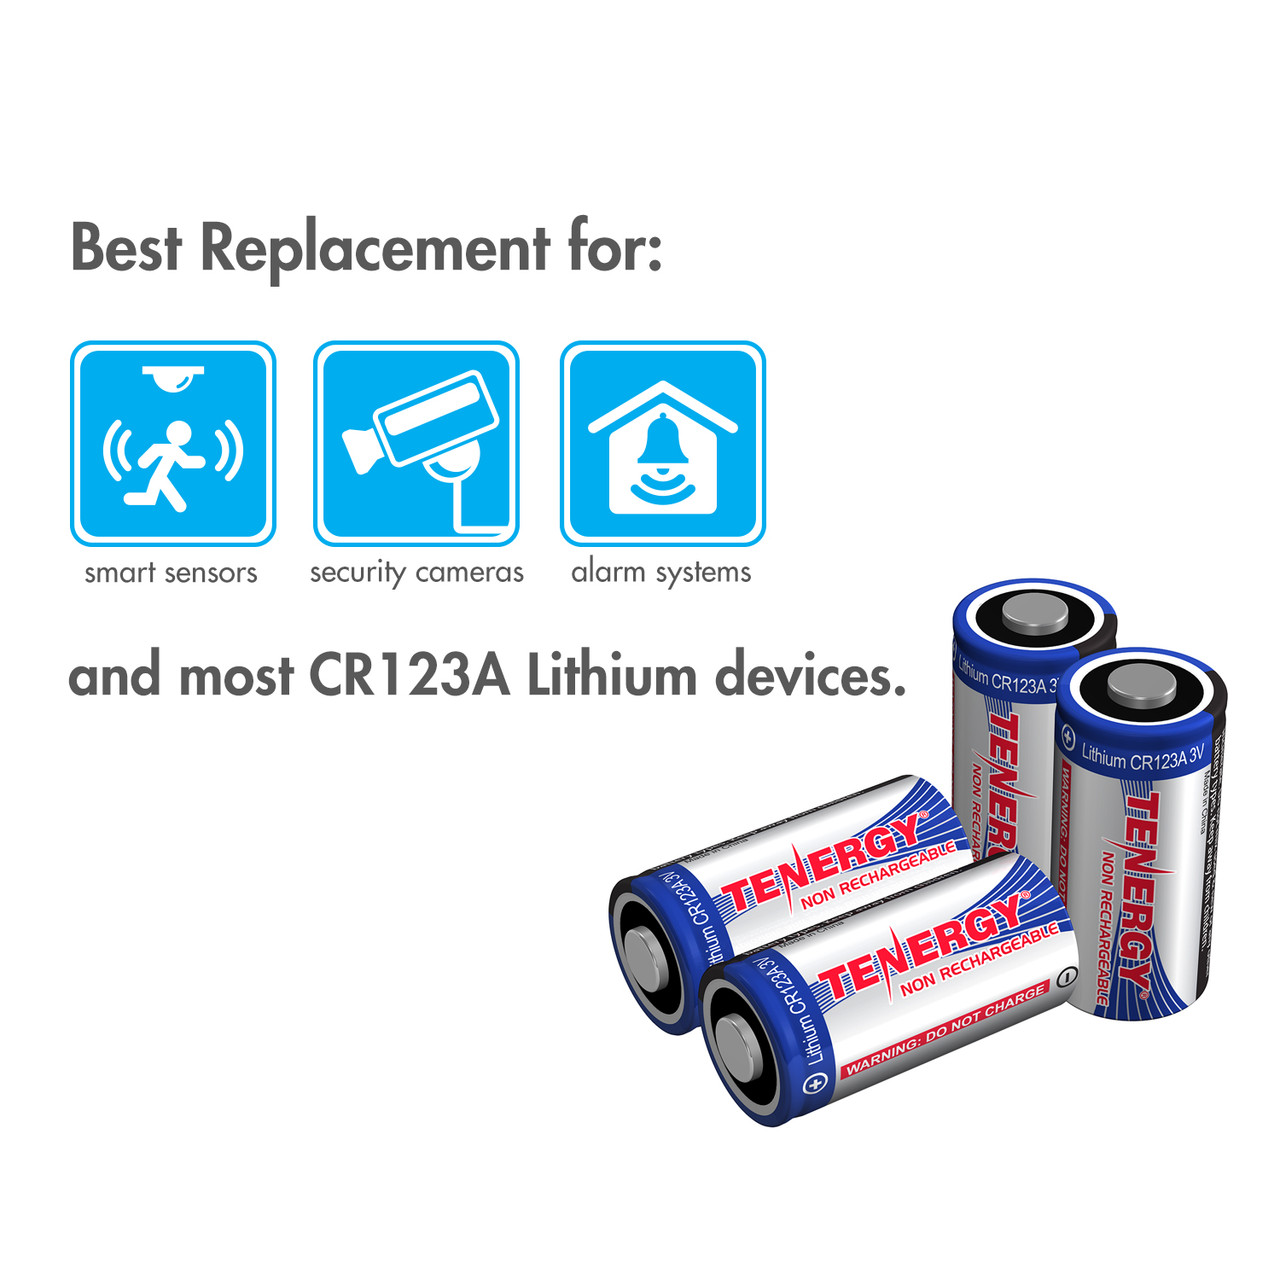 Tenergy CR123A Lithium Battery with PTC Protected (2 pcs) - Retail Card